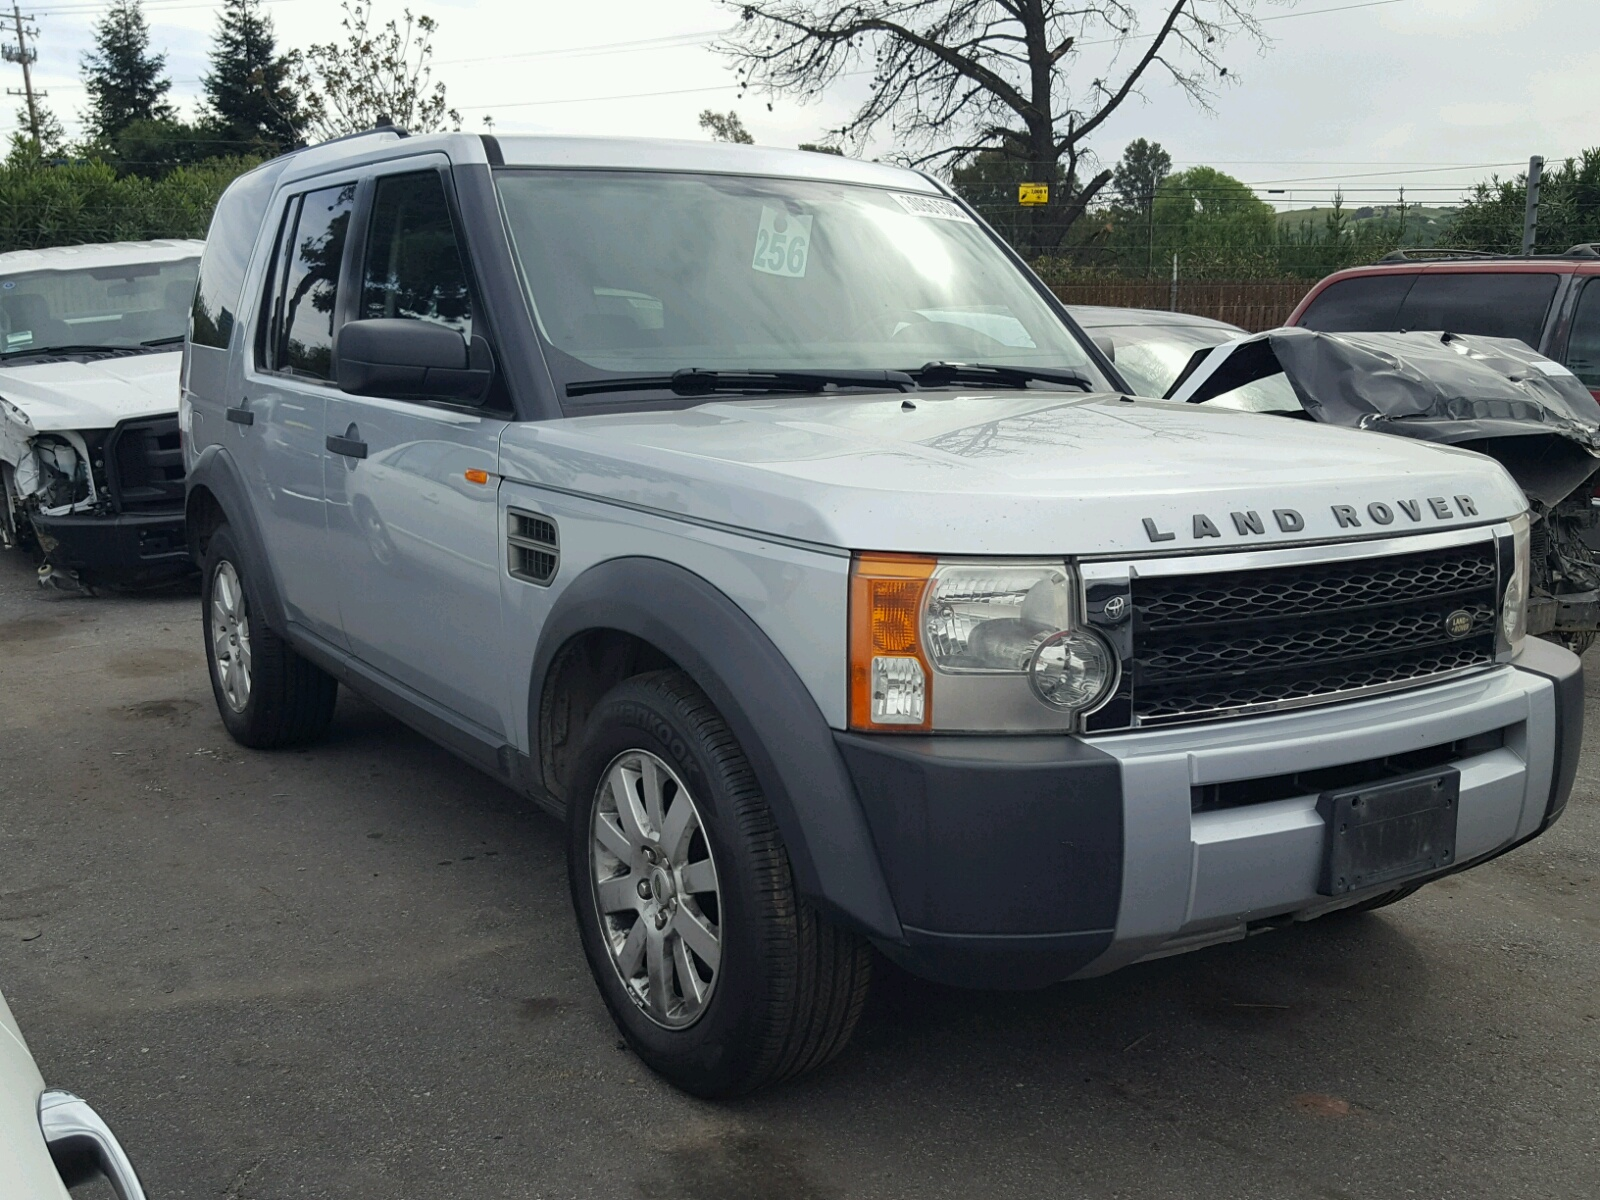 edmonton sale alberta in used for inventory land rover landrover